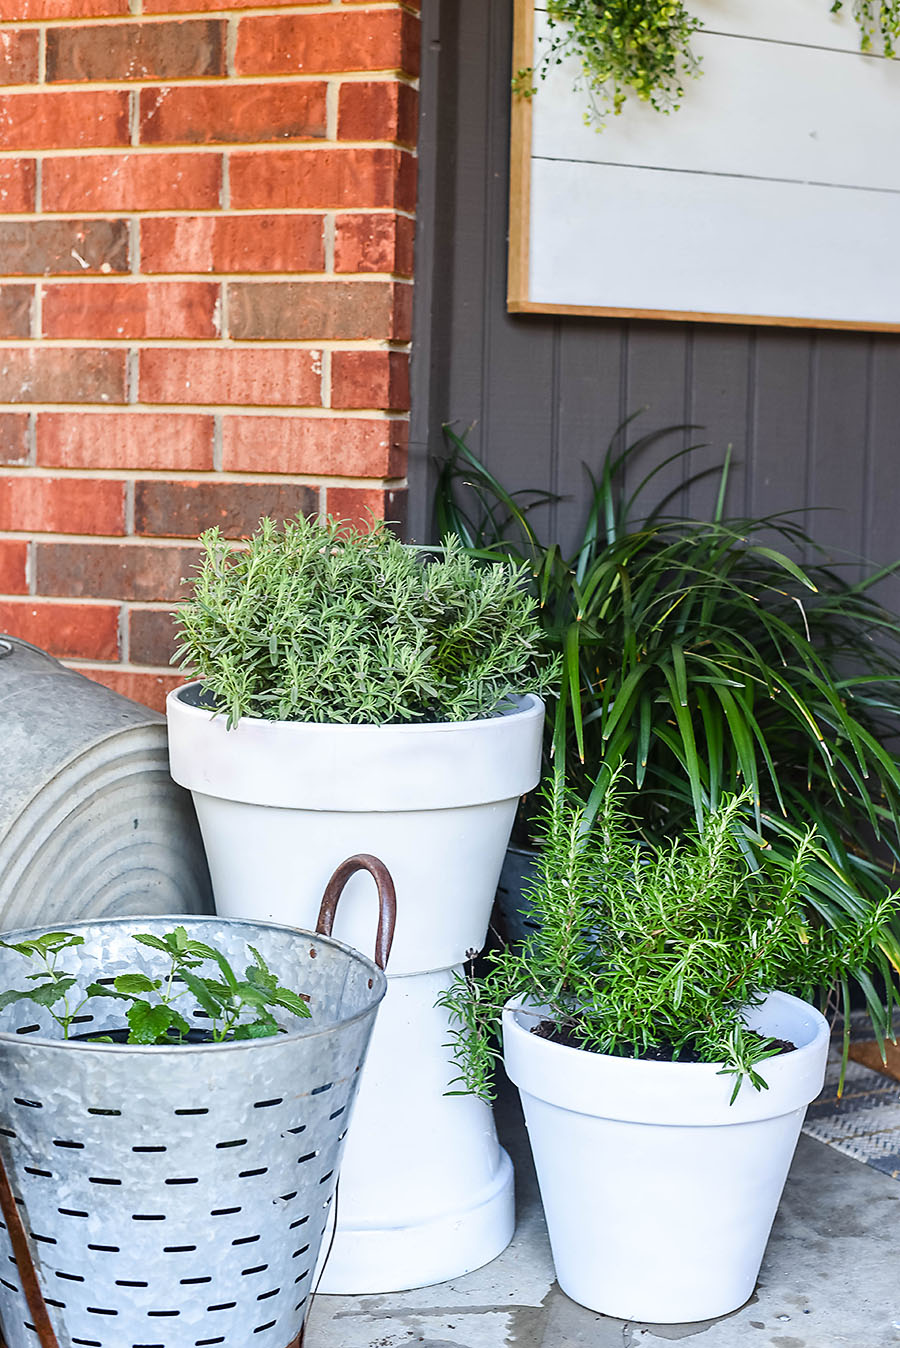 5 Plants That Repel Mosquitoes for Your Front Porch - Our